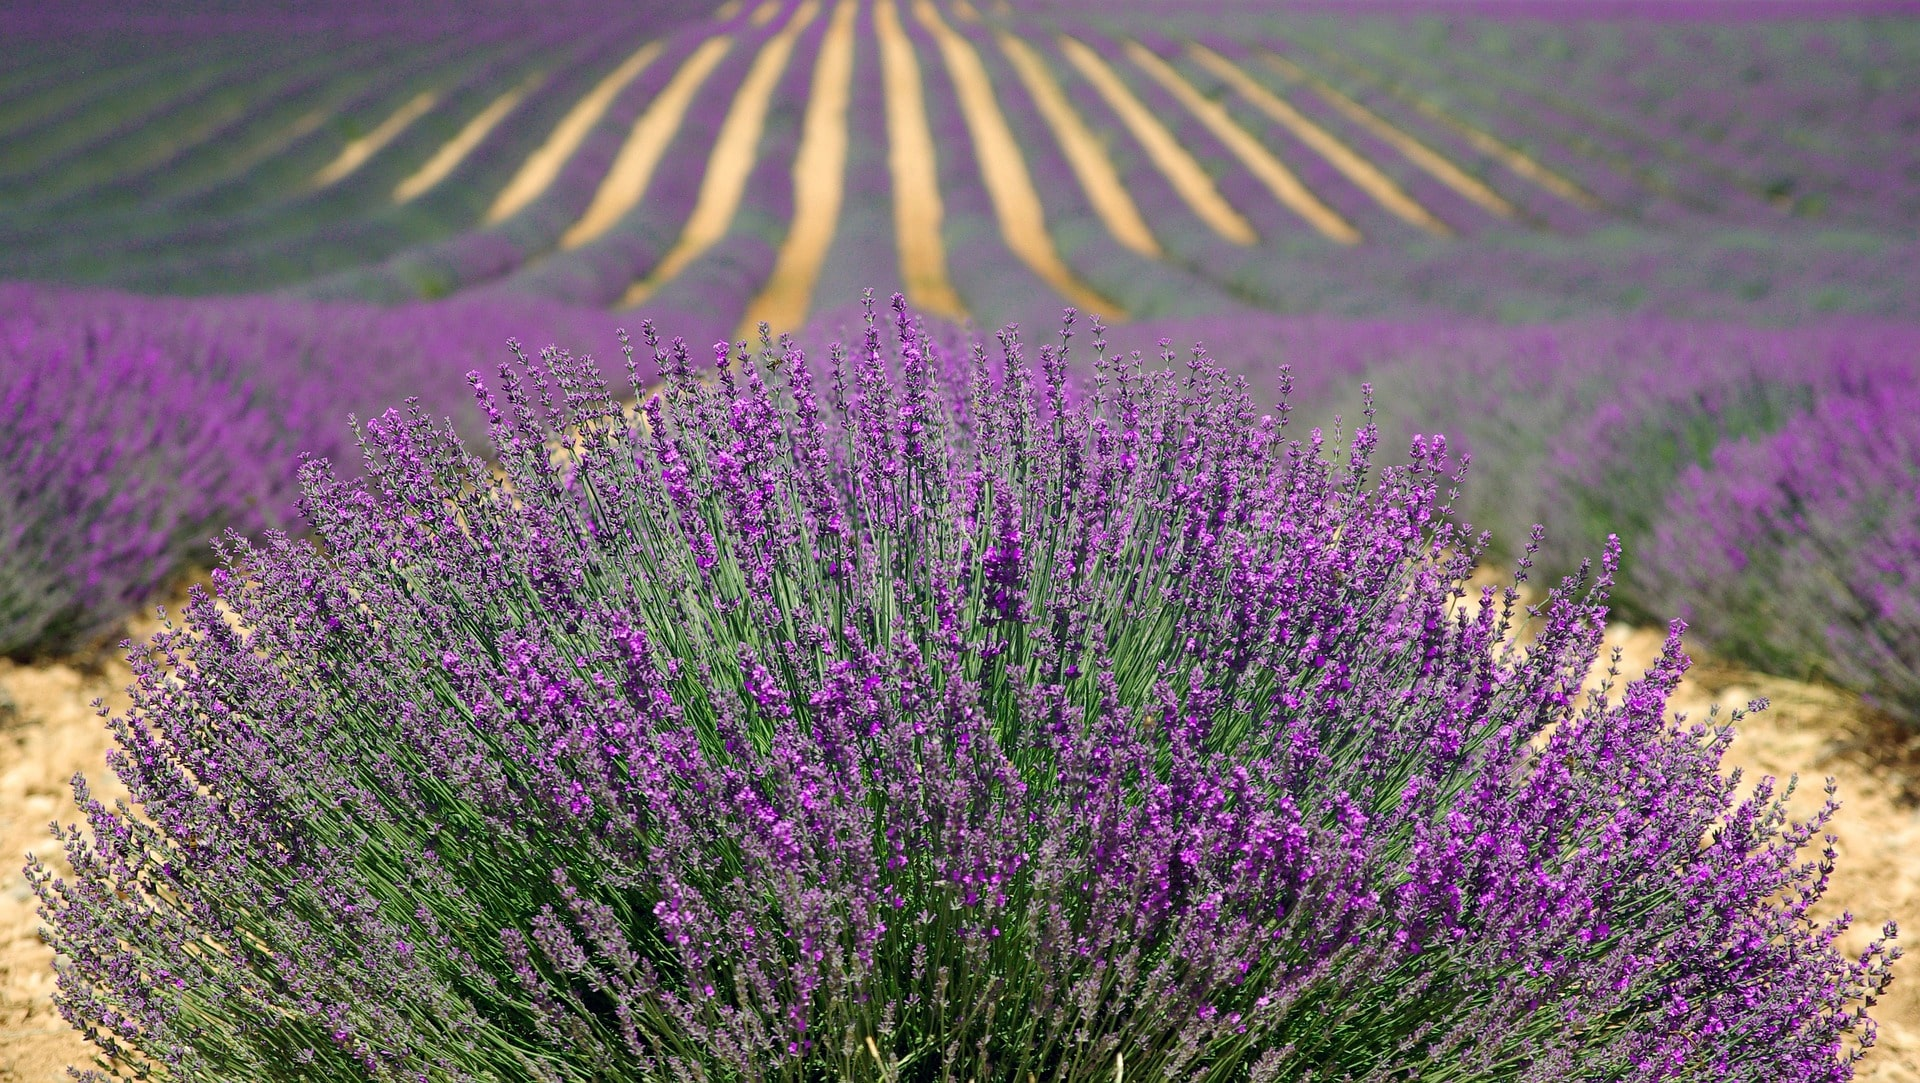 Exploring the lavender fields of Provence is a lovely thing to do in France